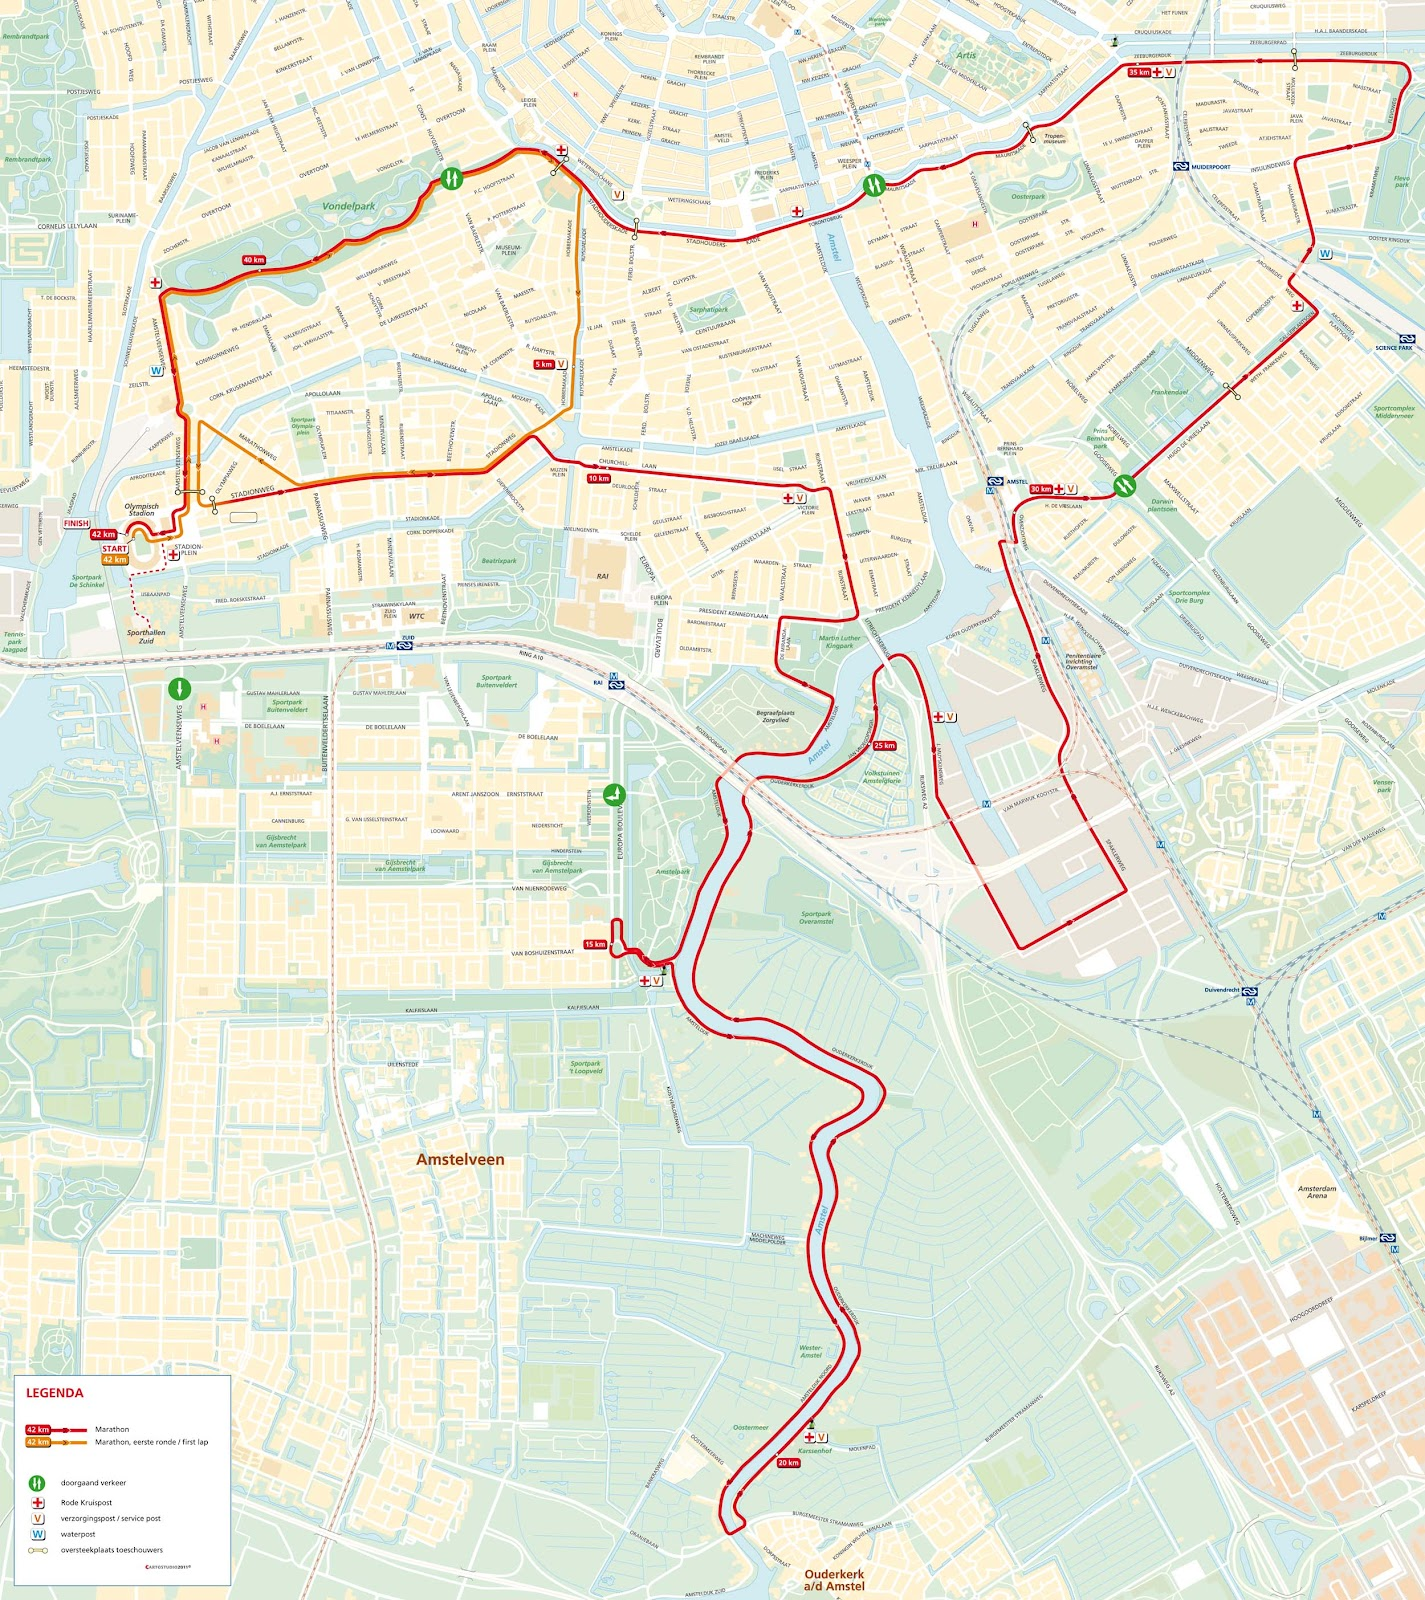 Wonderbaar RunningDutch: RunningDutch Review: Amsterdam Marathon WL-37